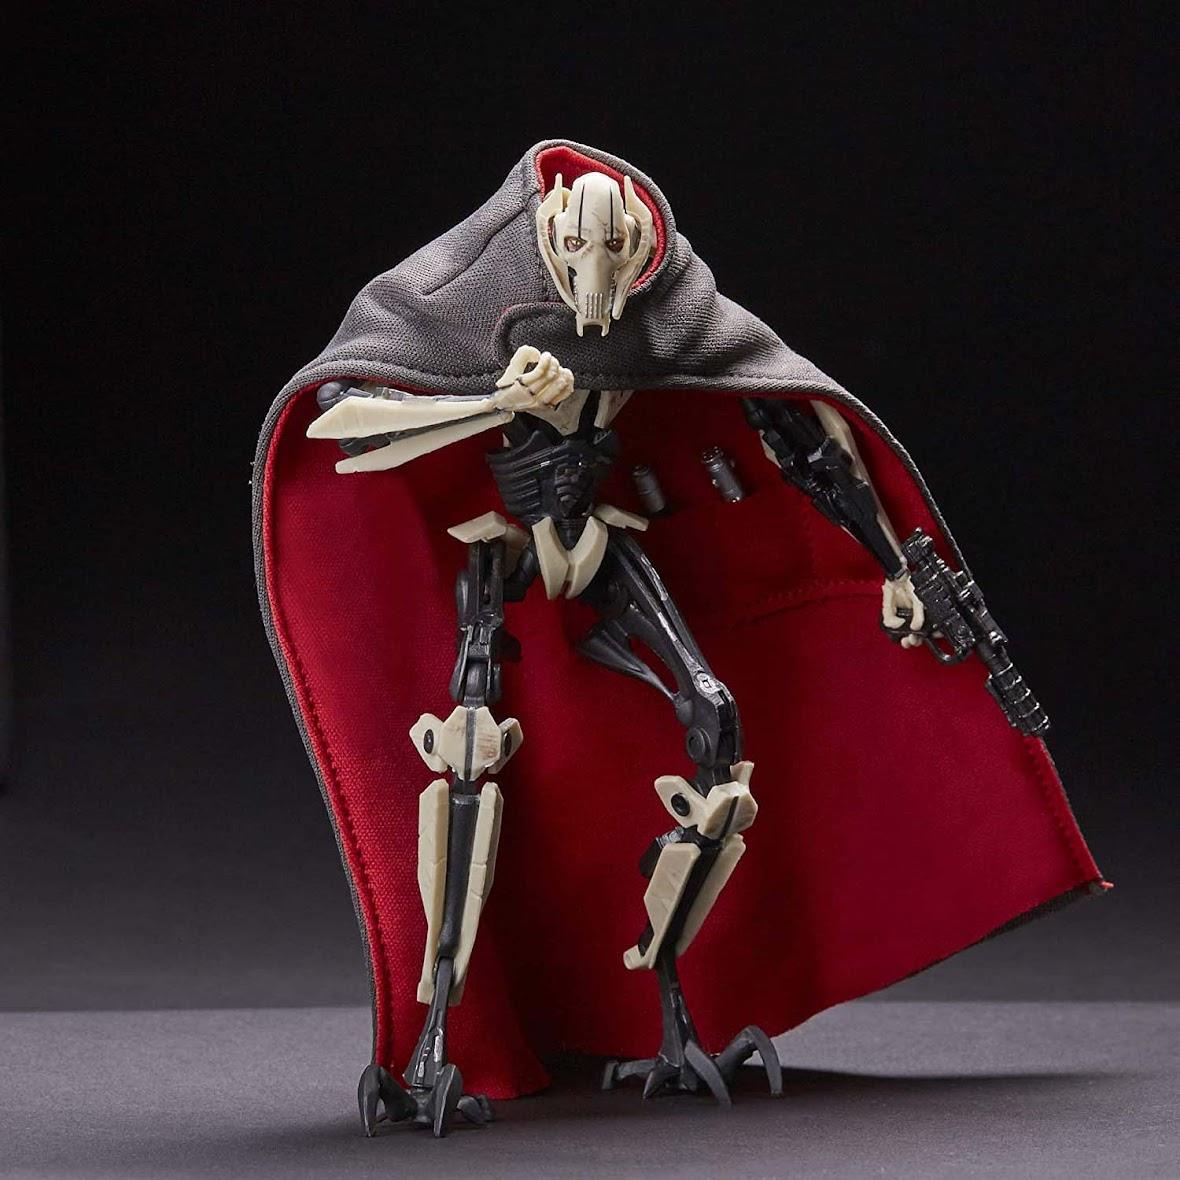 Hasbro The Black Series General Grievous Action Figure from Star Wars